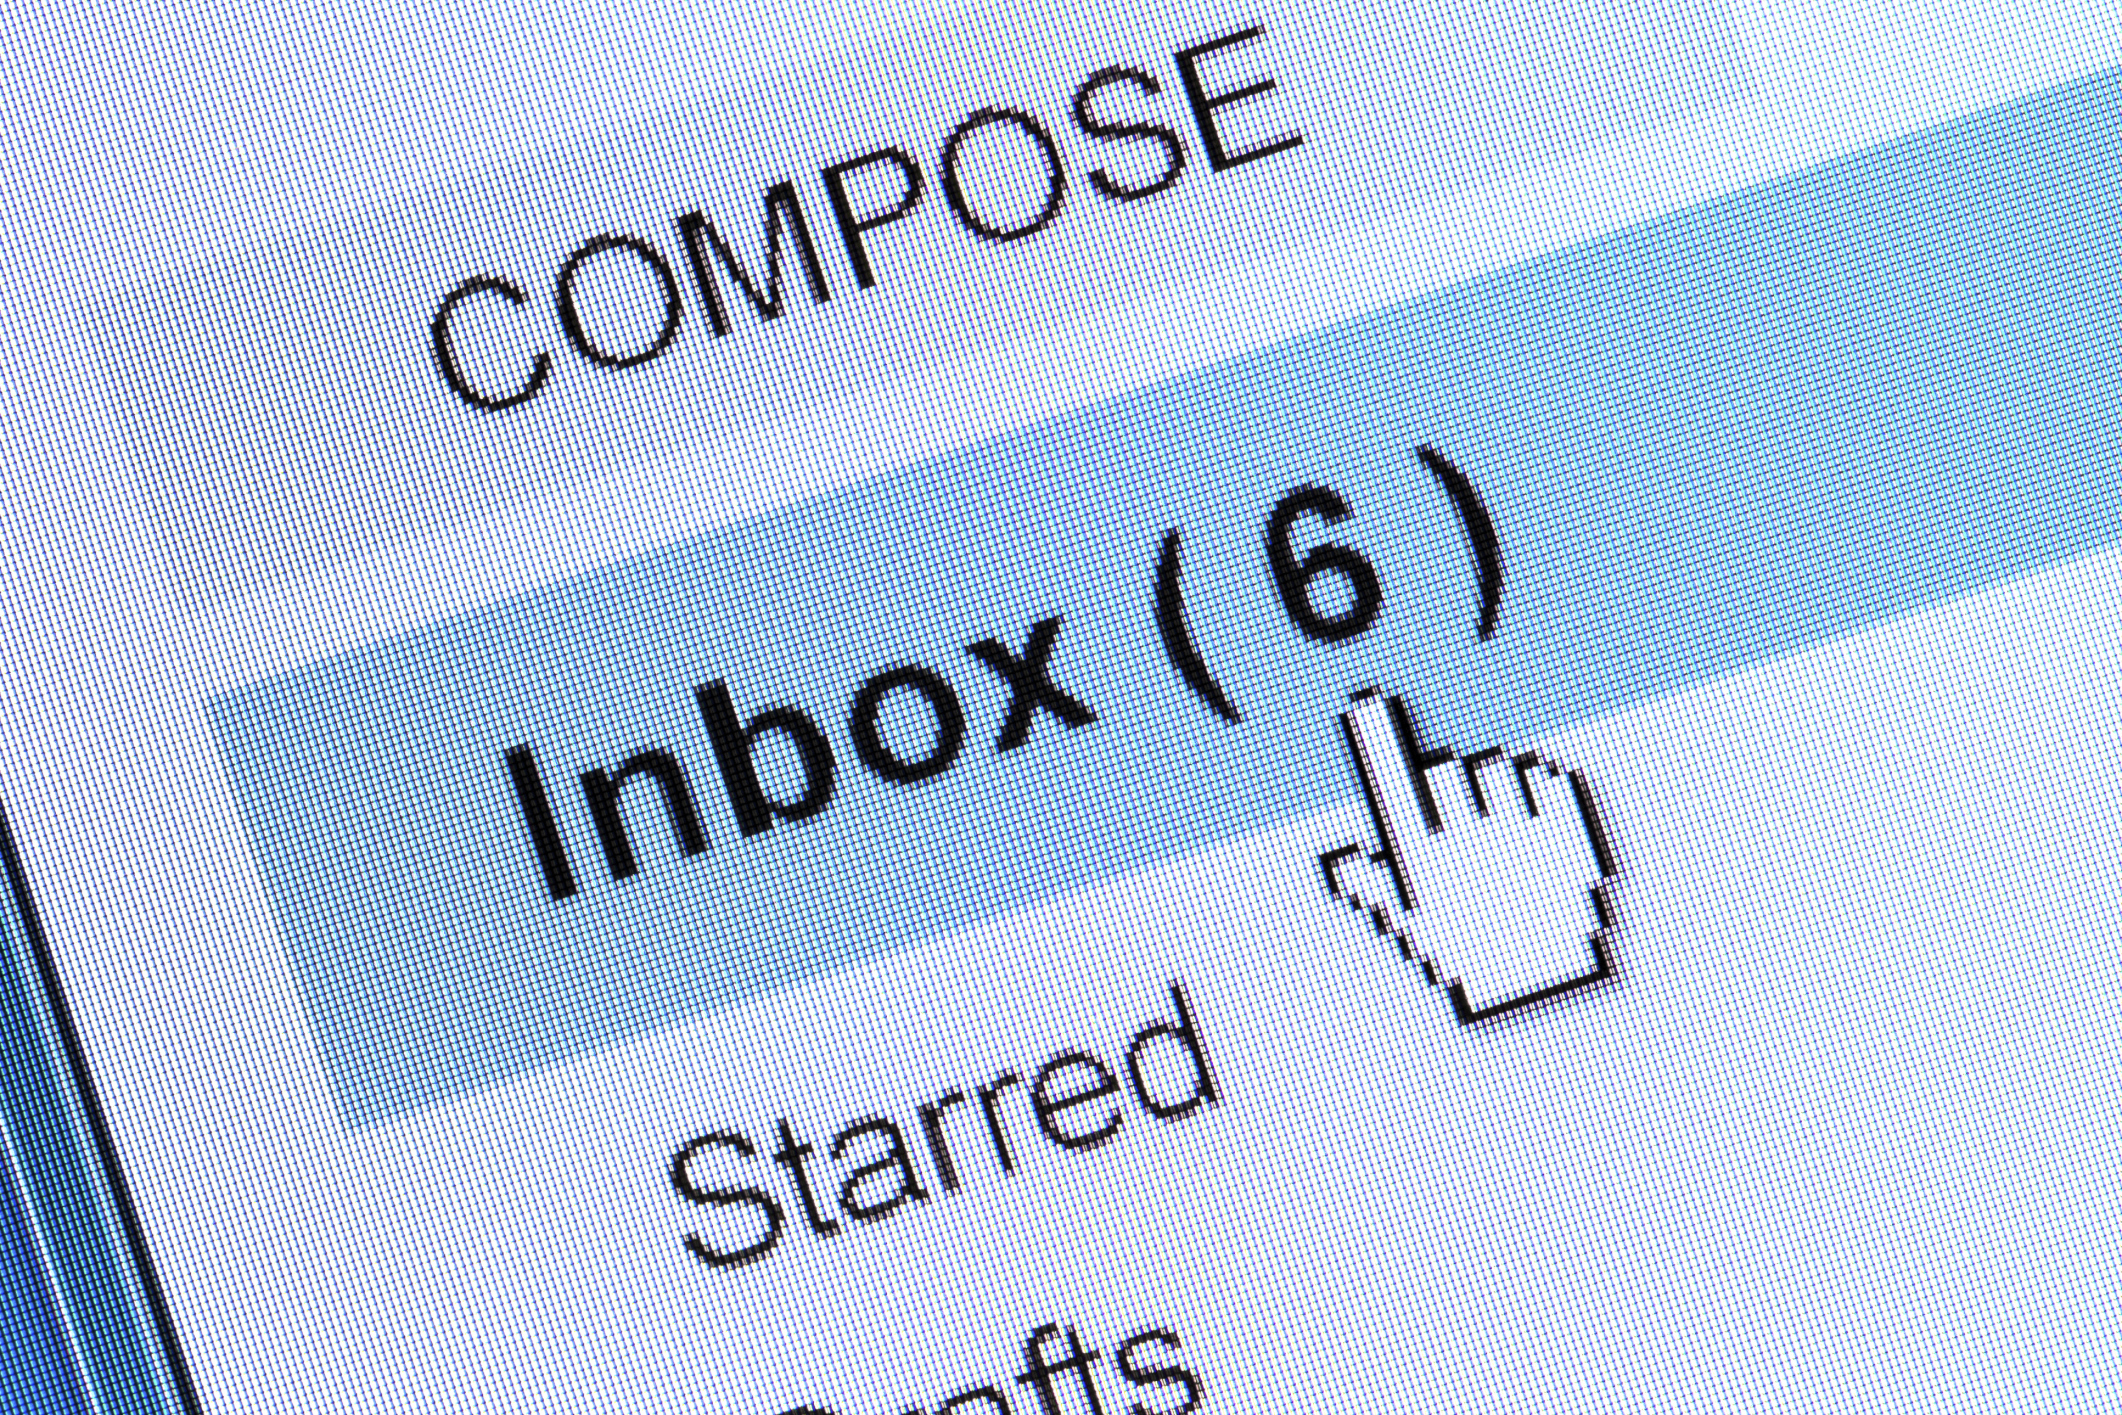 On Demand - email